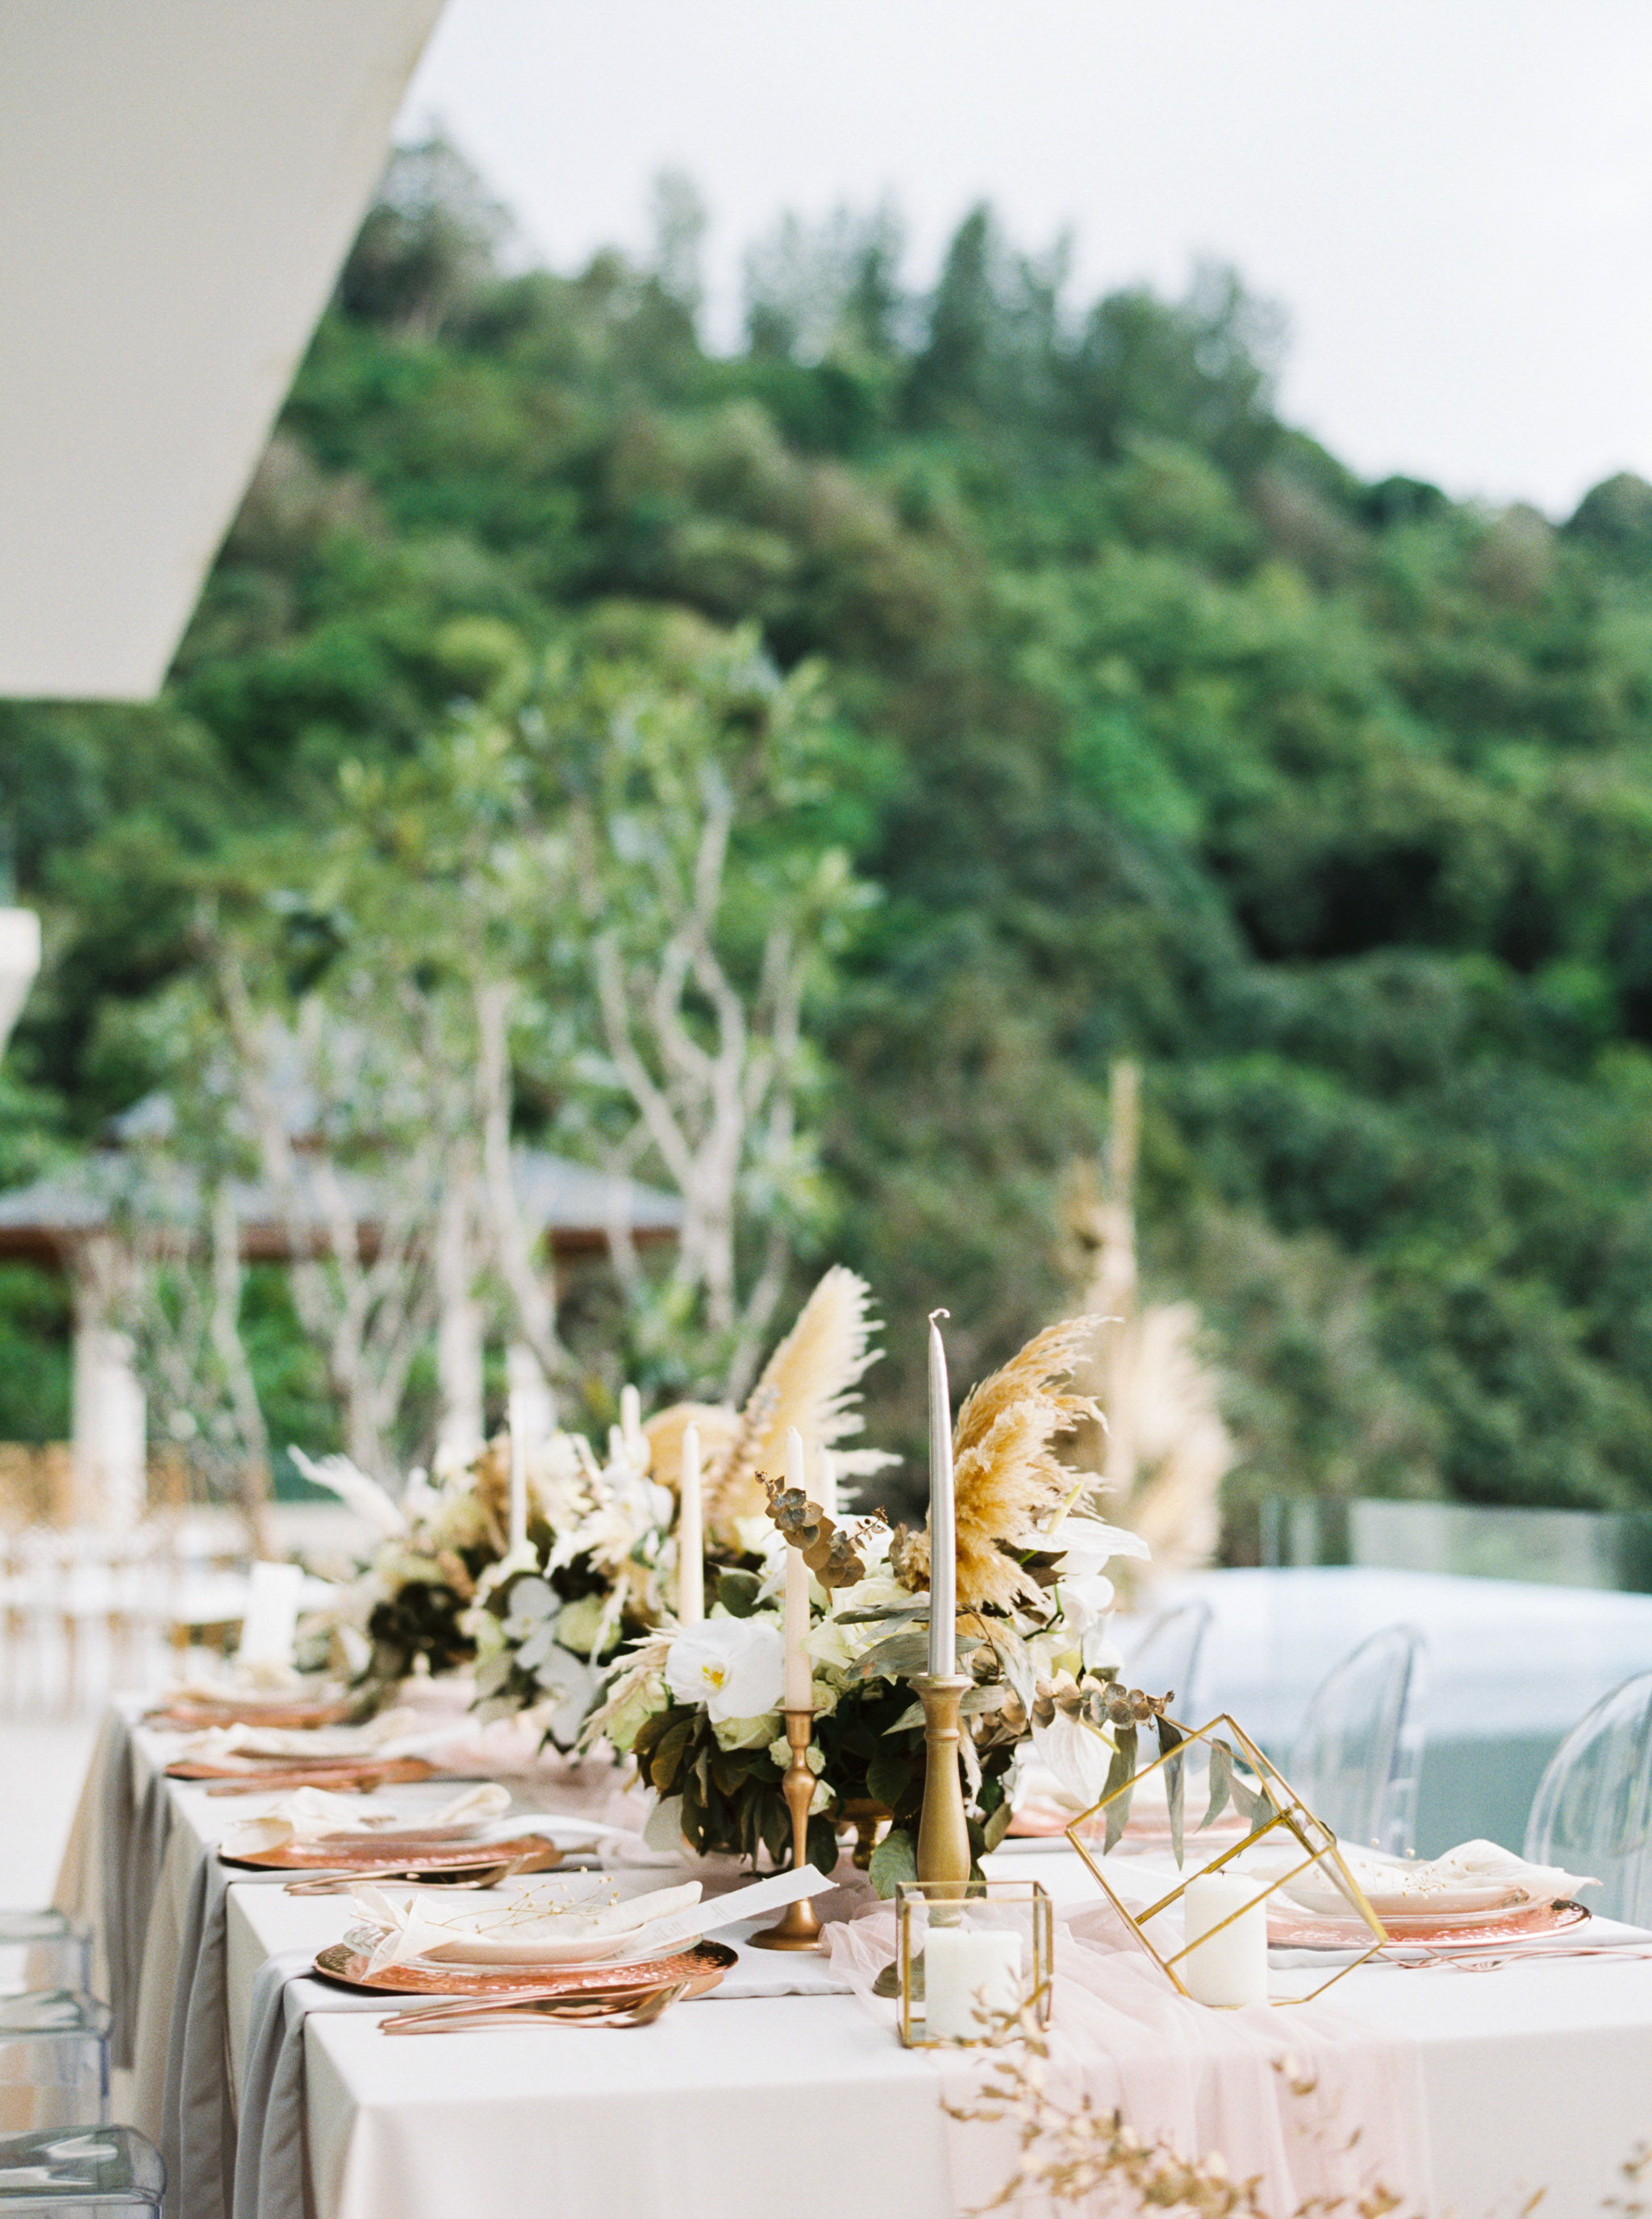 Destination Wedding Phuket Thailand Fine Art Film Photographer Sheri McMahon-00053-53.jpg